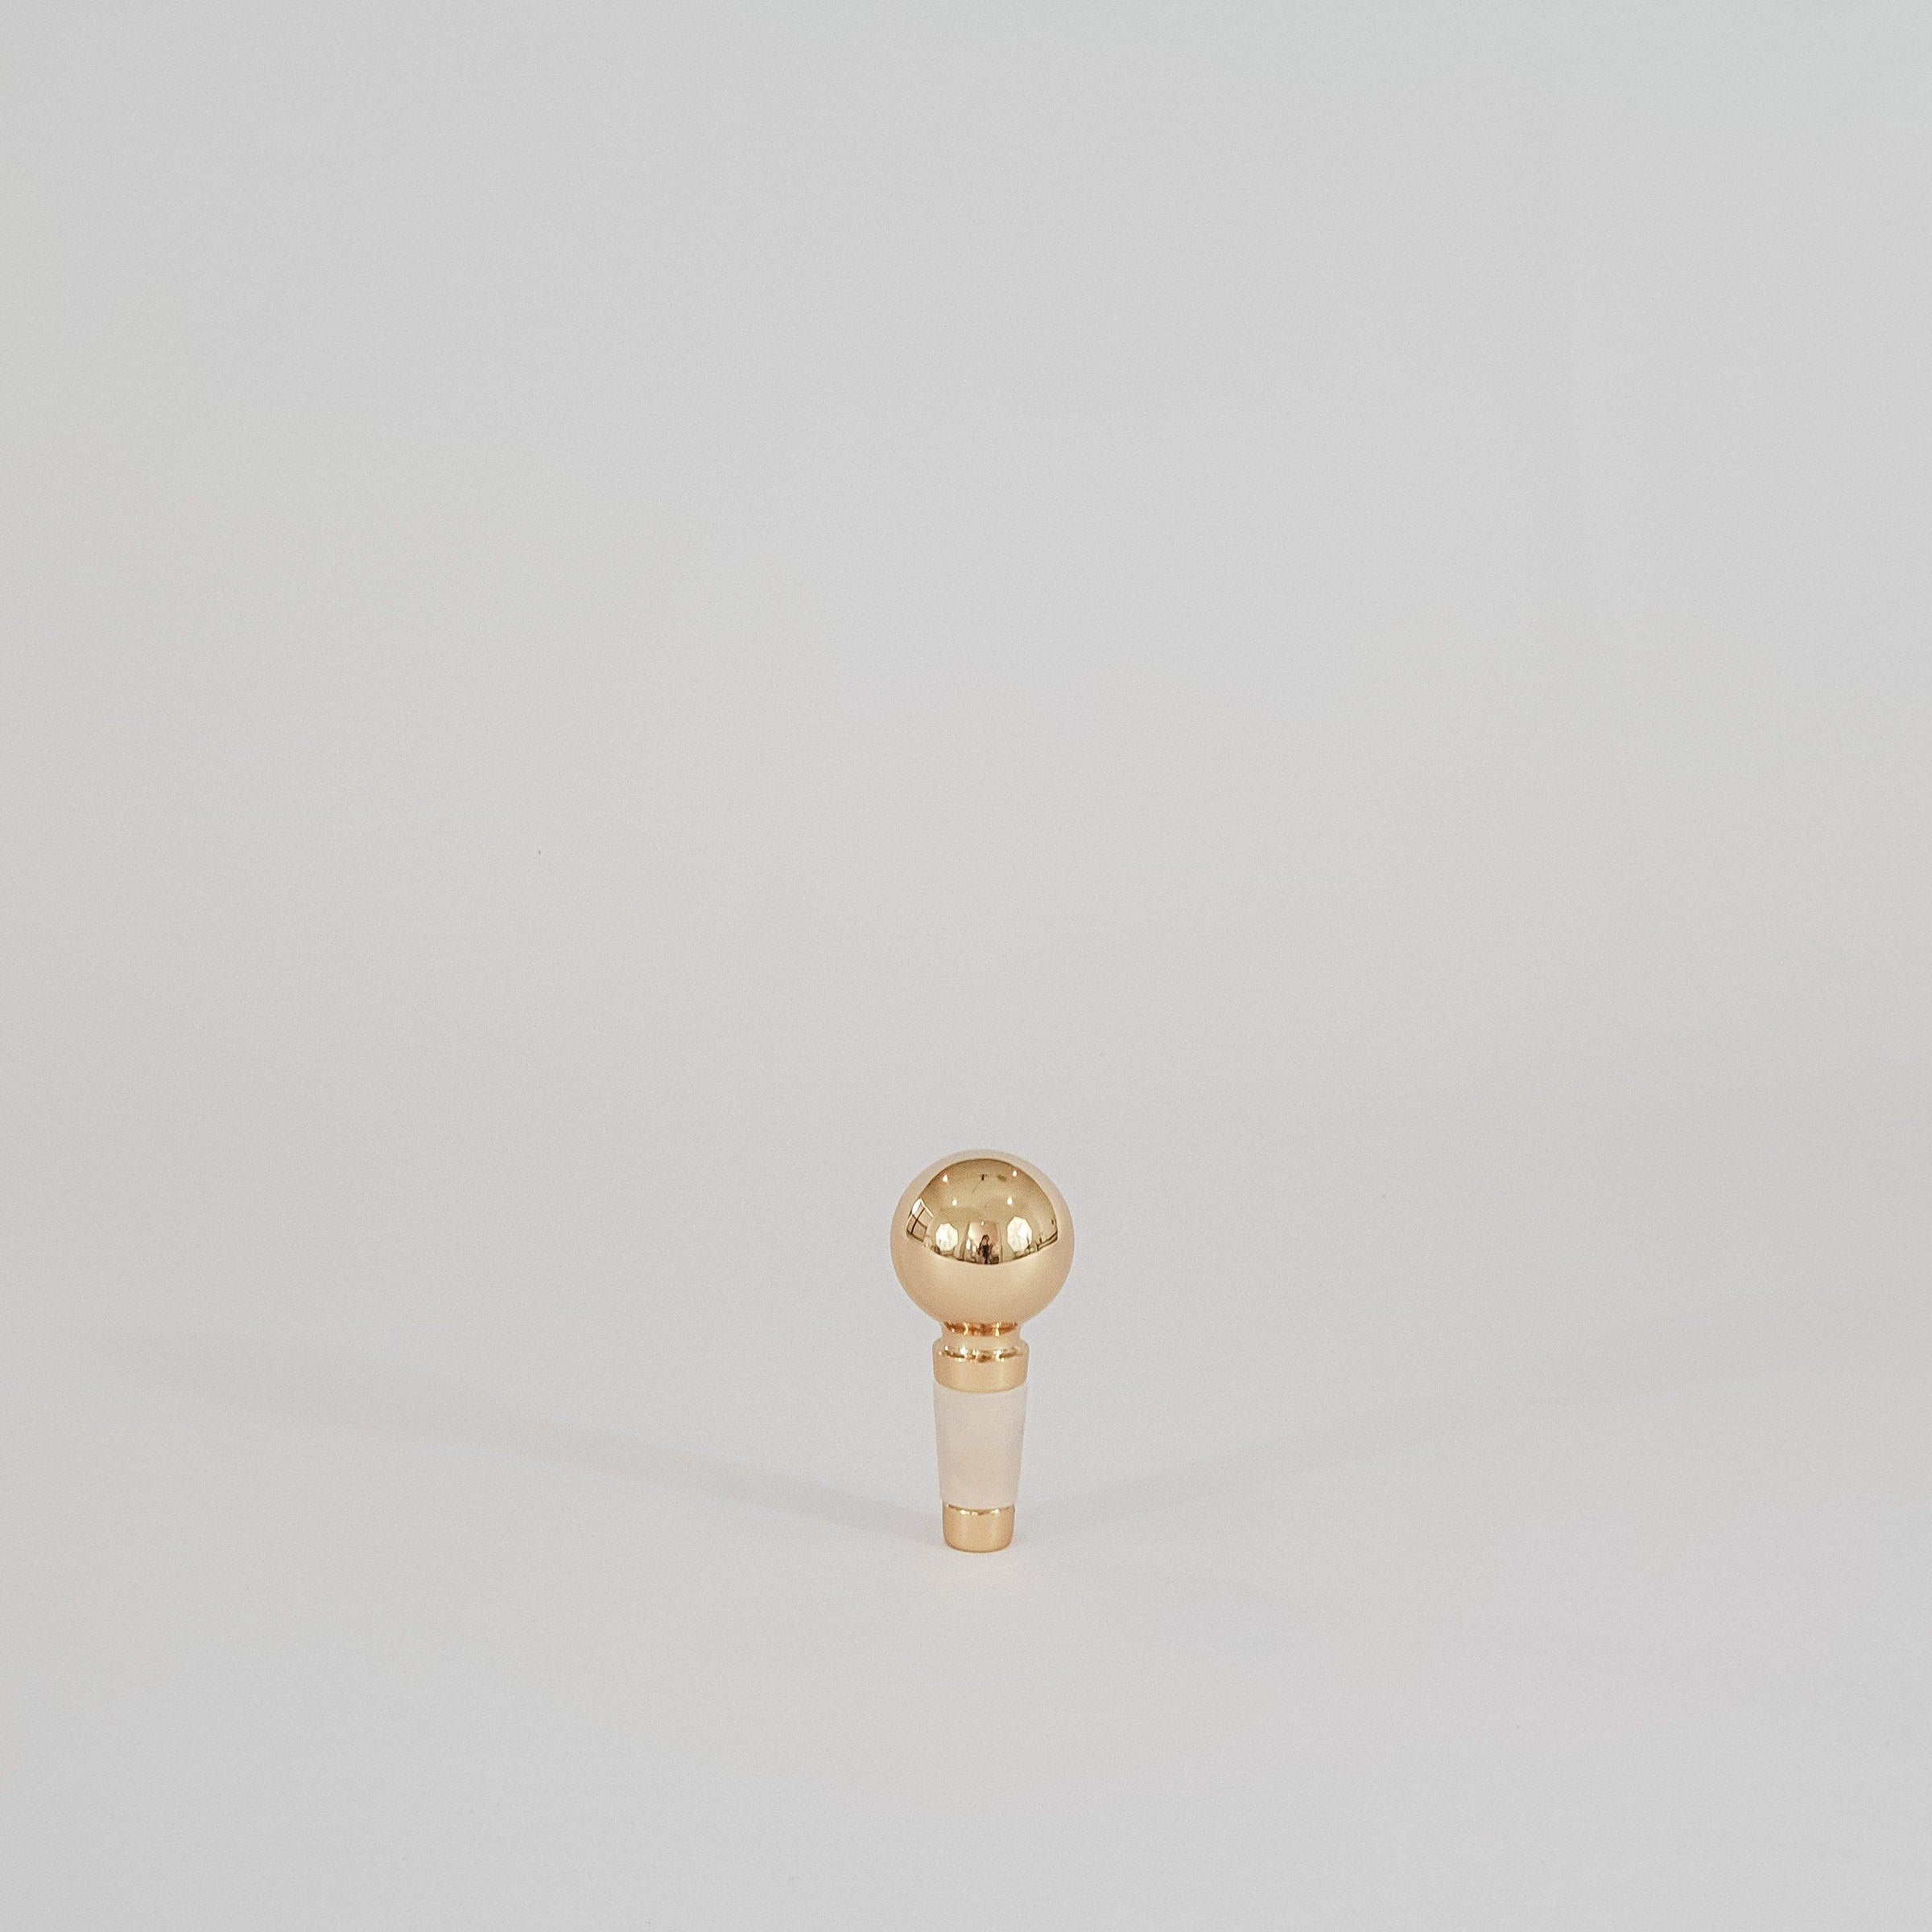 Brass Bottle Stopper - KM Home